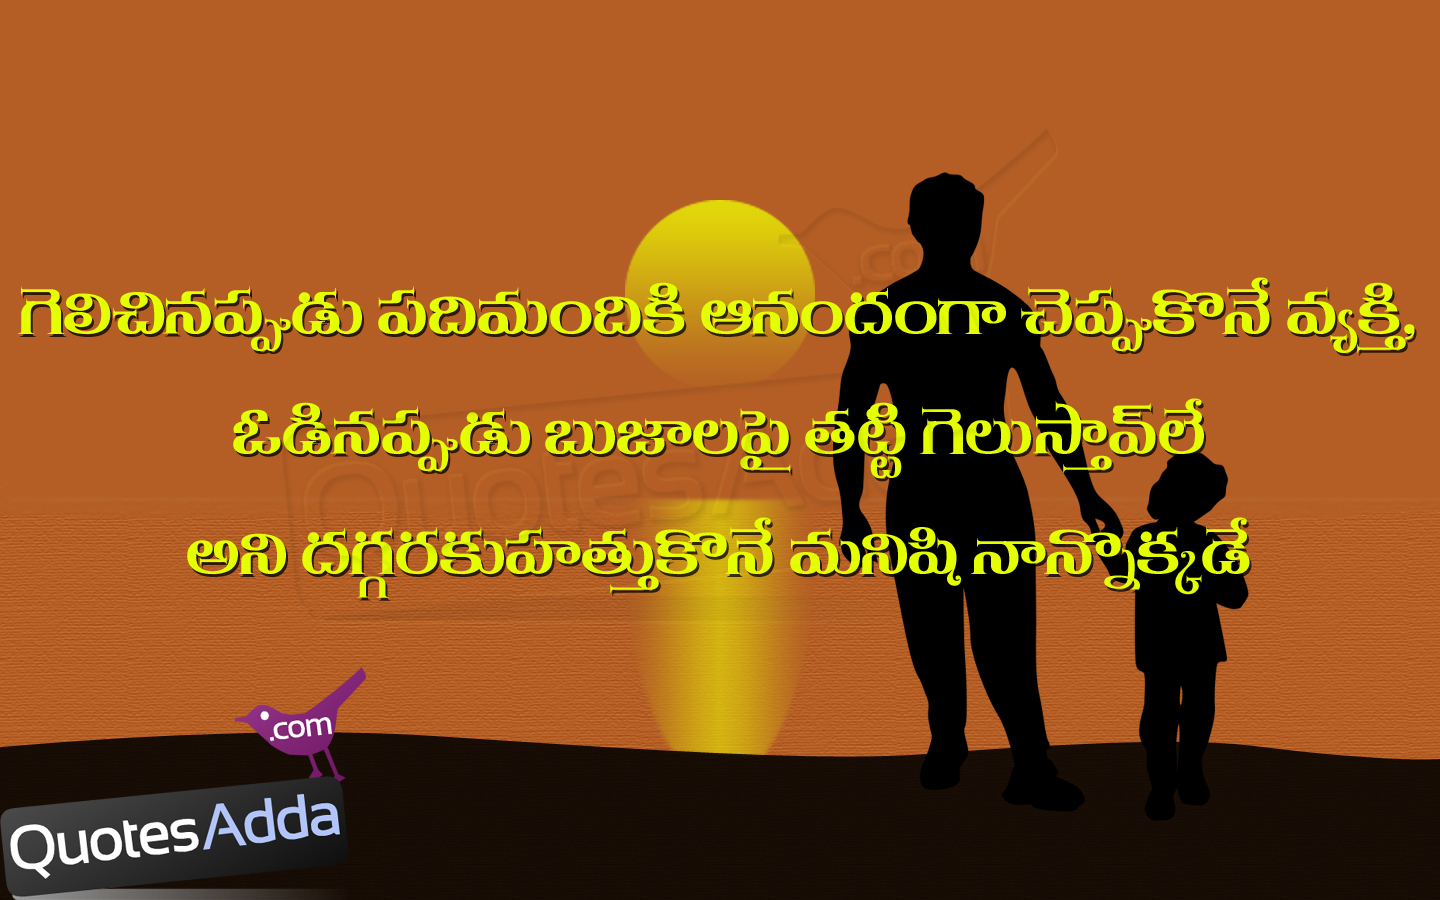 http://2.bp.blogspot.com/-ZrFyaj0FHoU/UUGAGOiUEfI/AAAAAAAAALE/lxabd_xfLaY/s1600/Father%20Quotes%20in%20Telugu%20-%20QuotesAdda.com.jpg